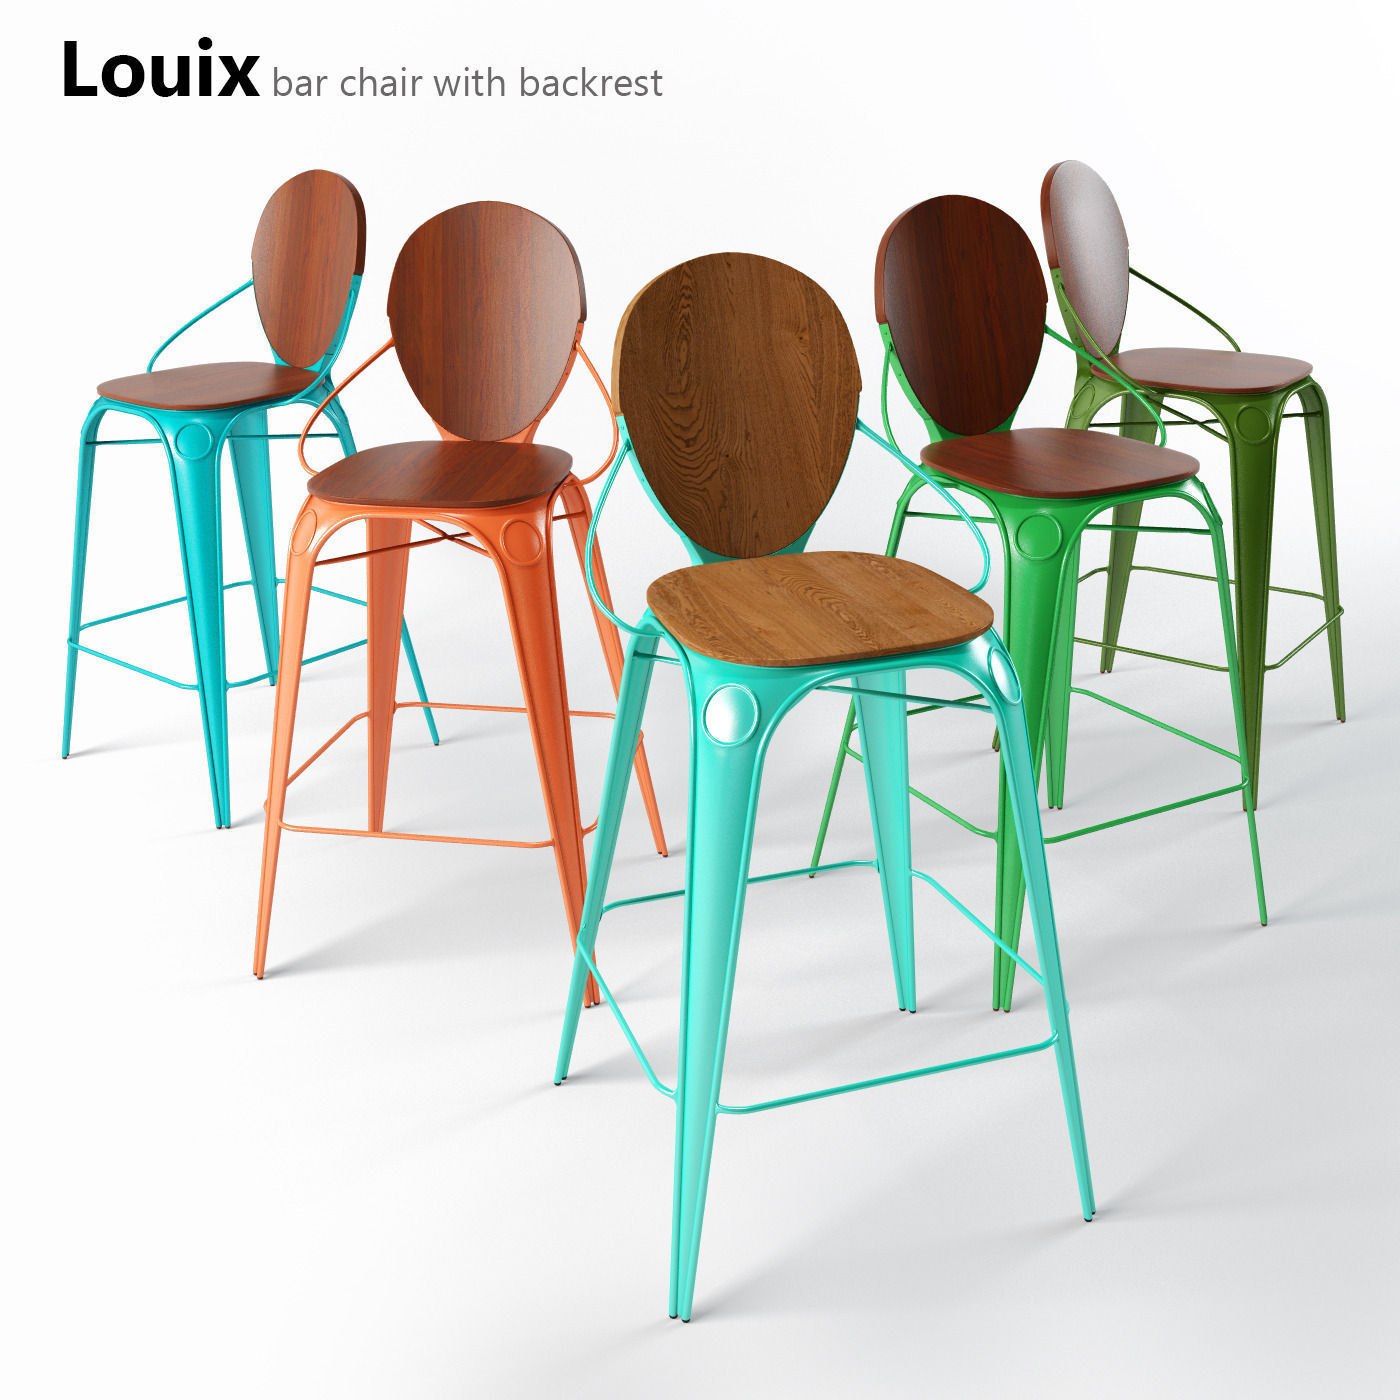 3D Louix bar chair with backrest